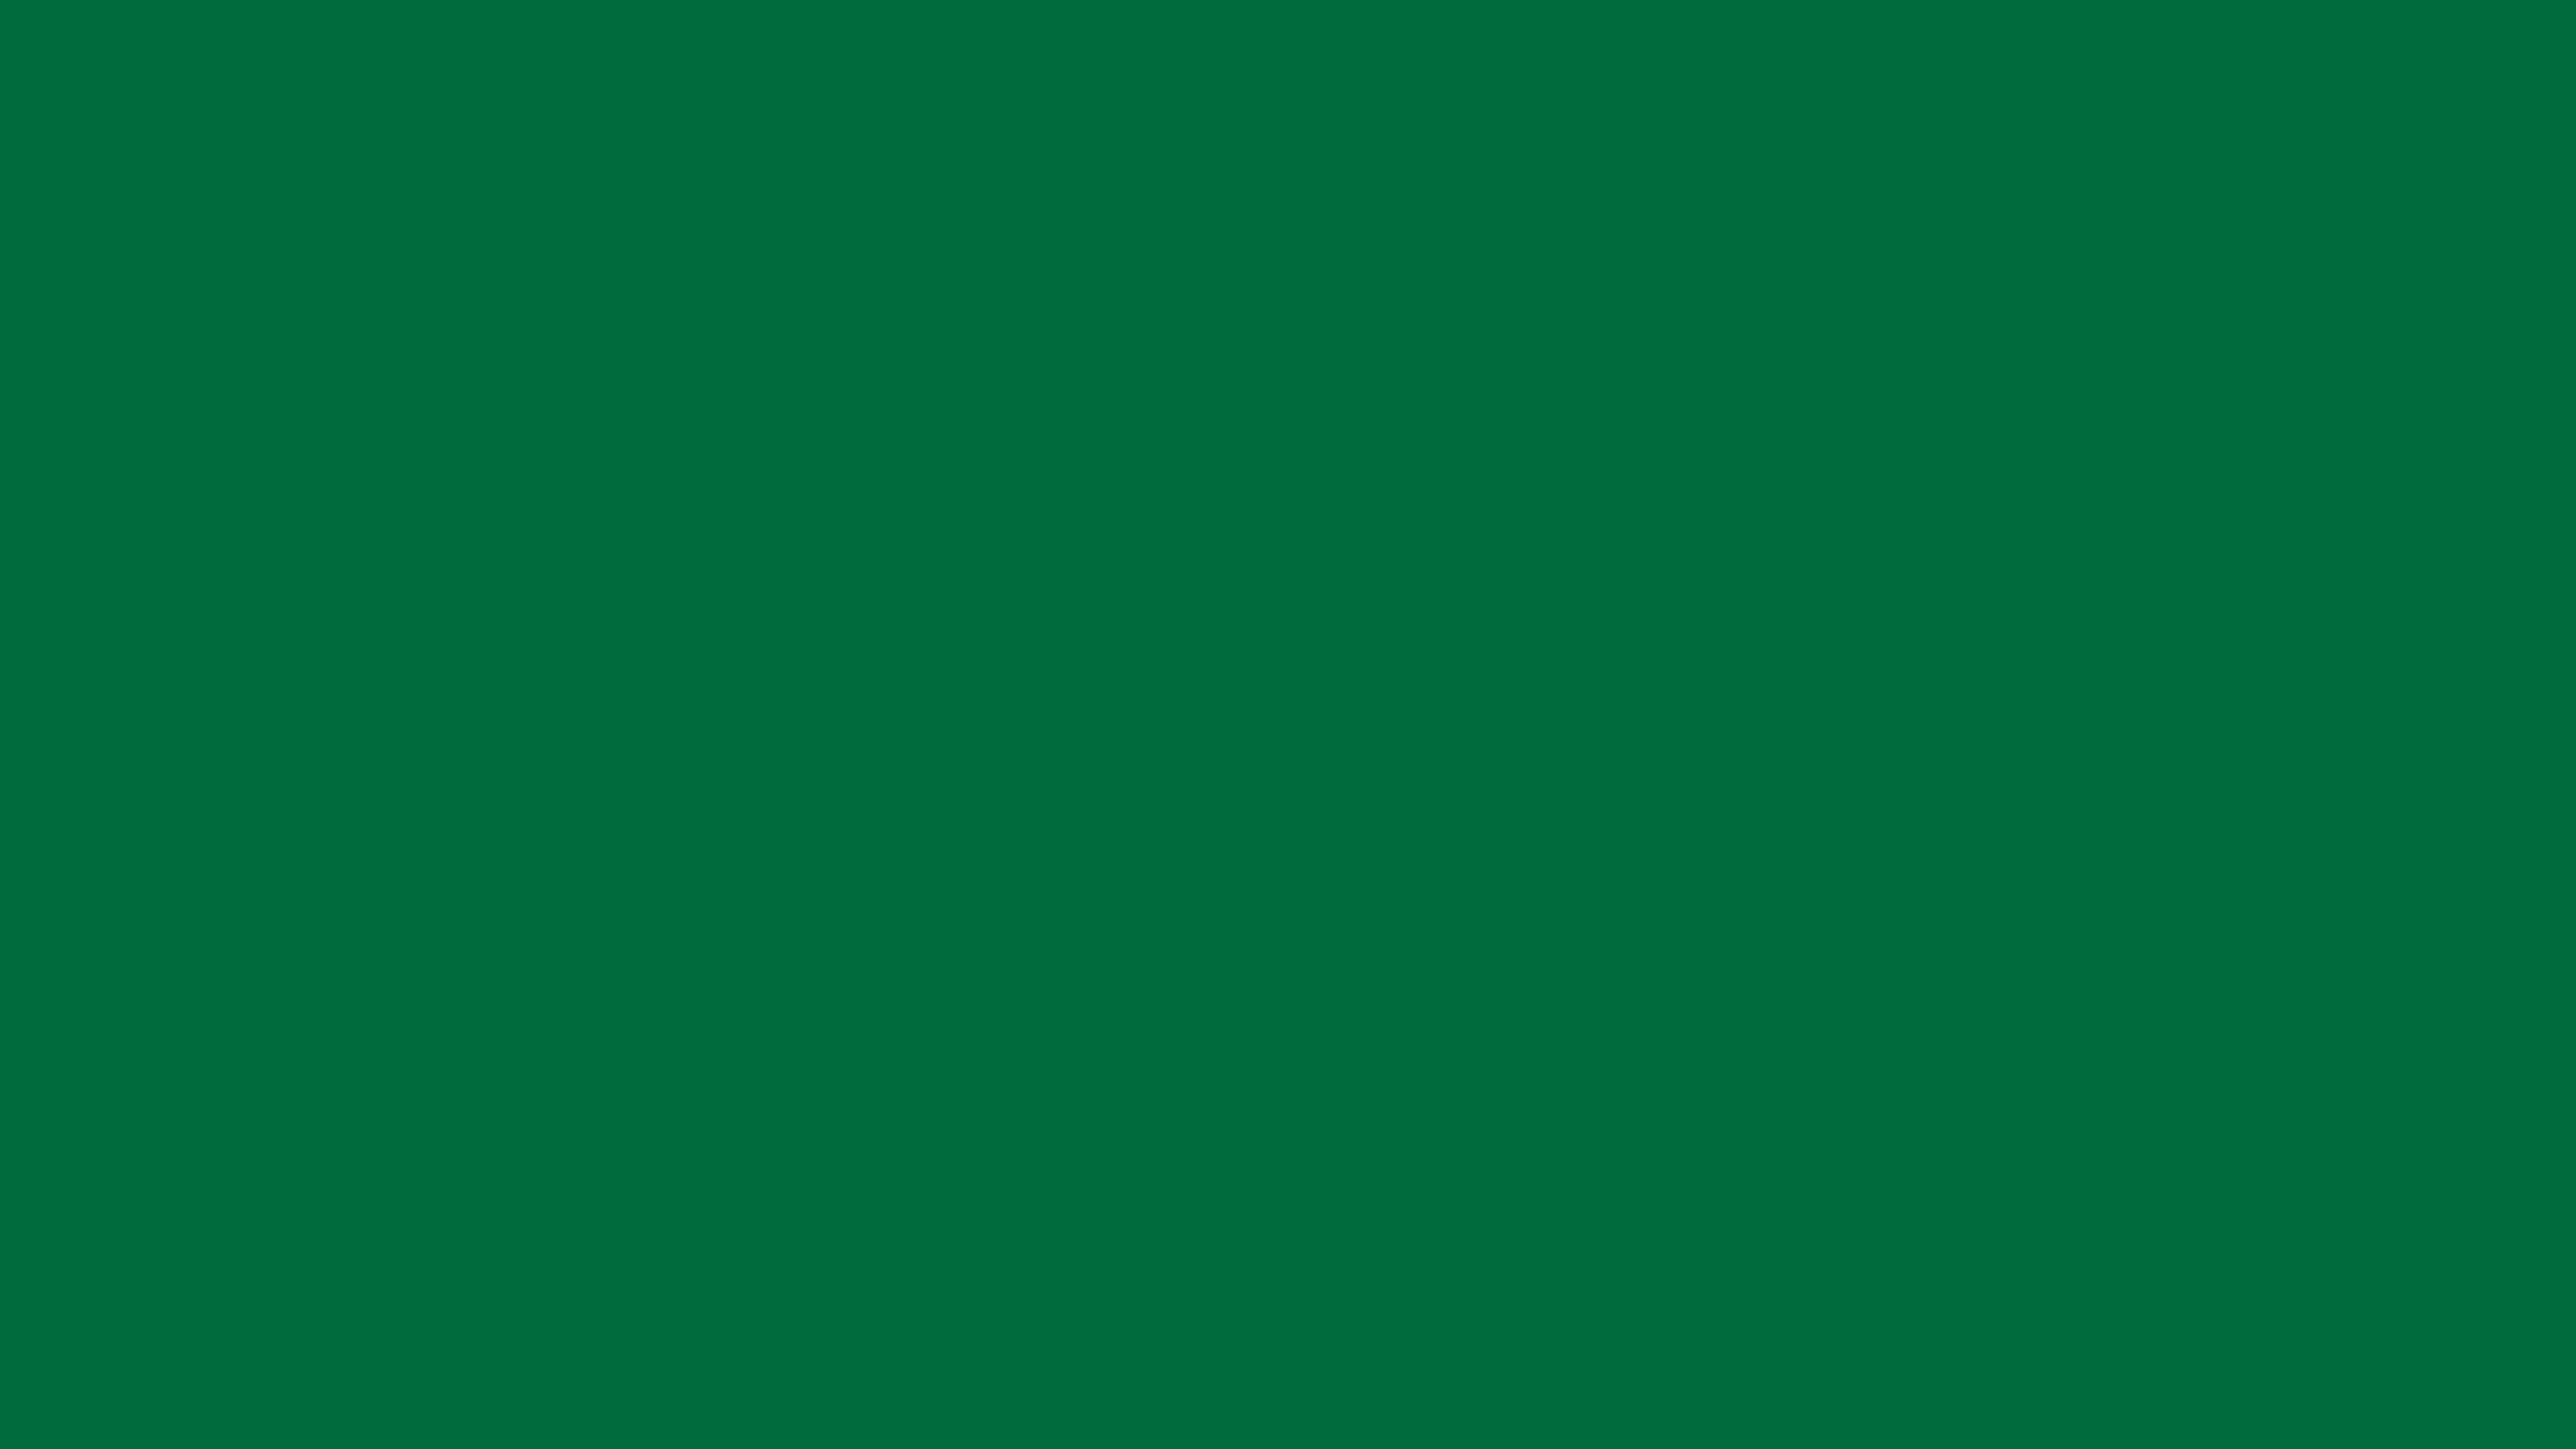 5120x2880 Cadmium Green Solid Color Background